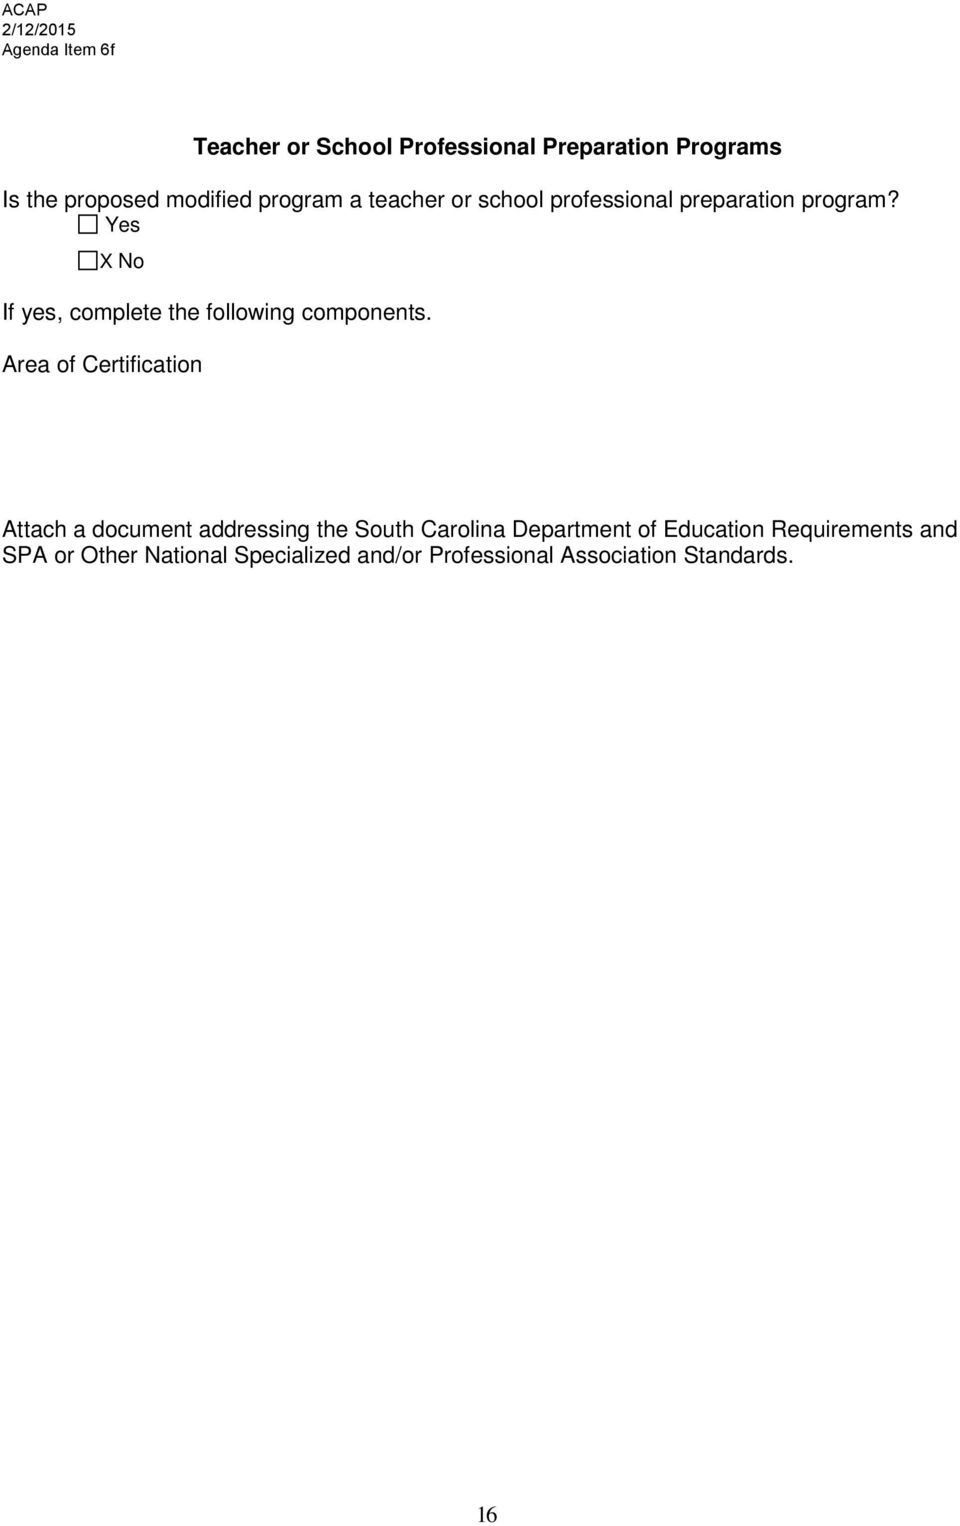 Area of Certification Attach a document addressing the South Carolina Department of Education